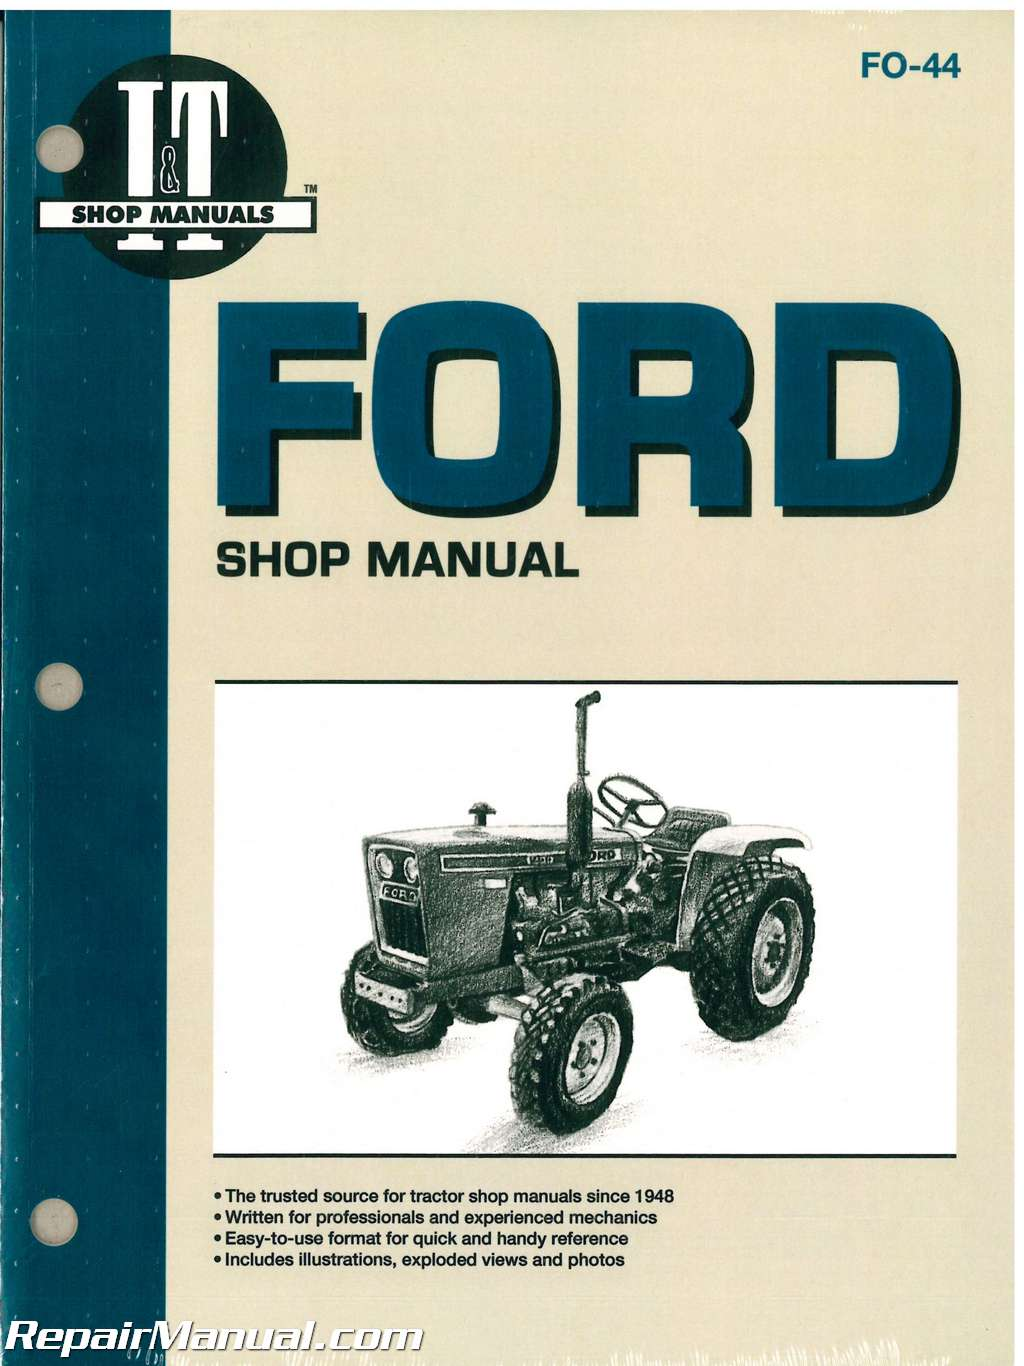 Ford 3000 Diesel Wiring Harness Diagram Library Off Road New Holland 1100 1110 1200 1210 1300 1310 1500 1510 1700 1710 5610 Tractor